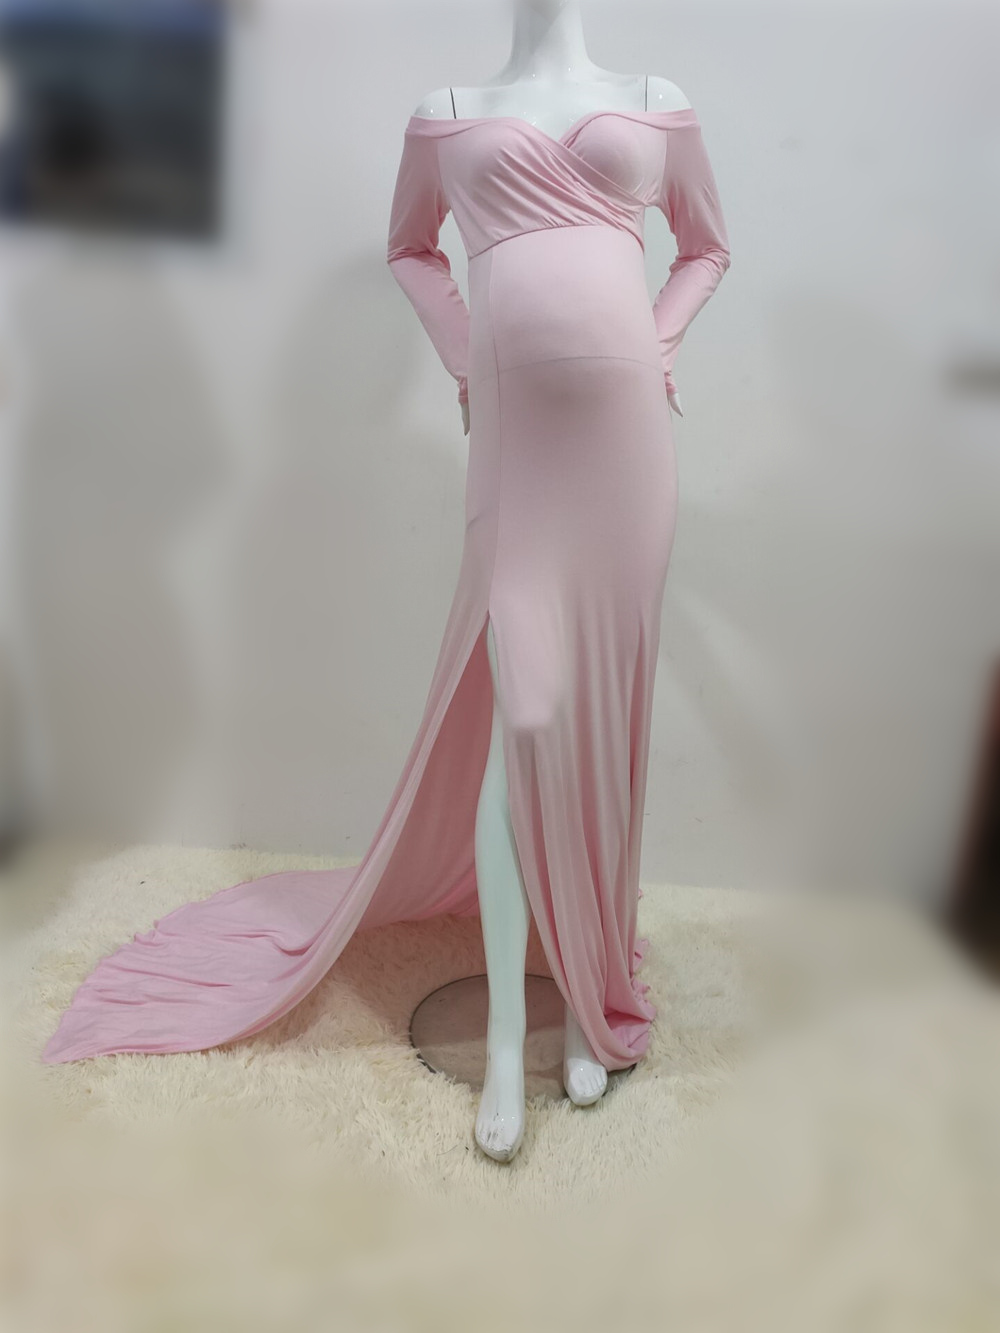 Sexy Shoulderless Maternity Dresses For Photo Shoot Maxi Gown Split Side Women Pregnant Photography Props Long Pregnancy Dress (12)